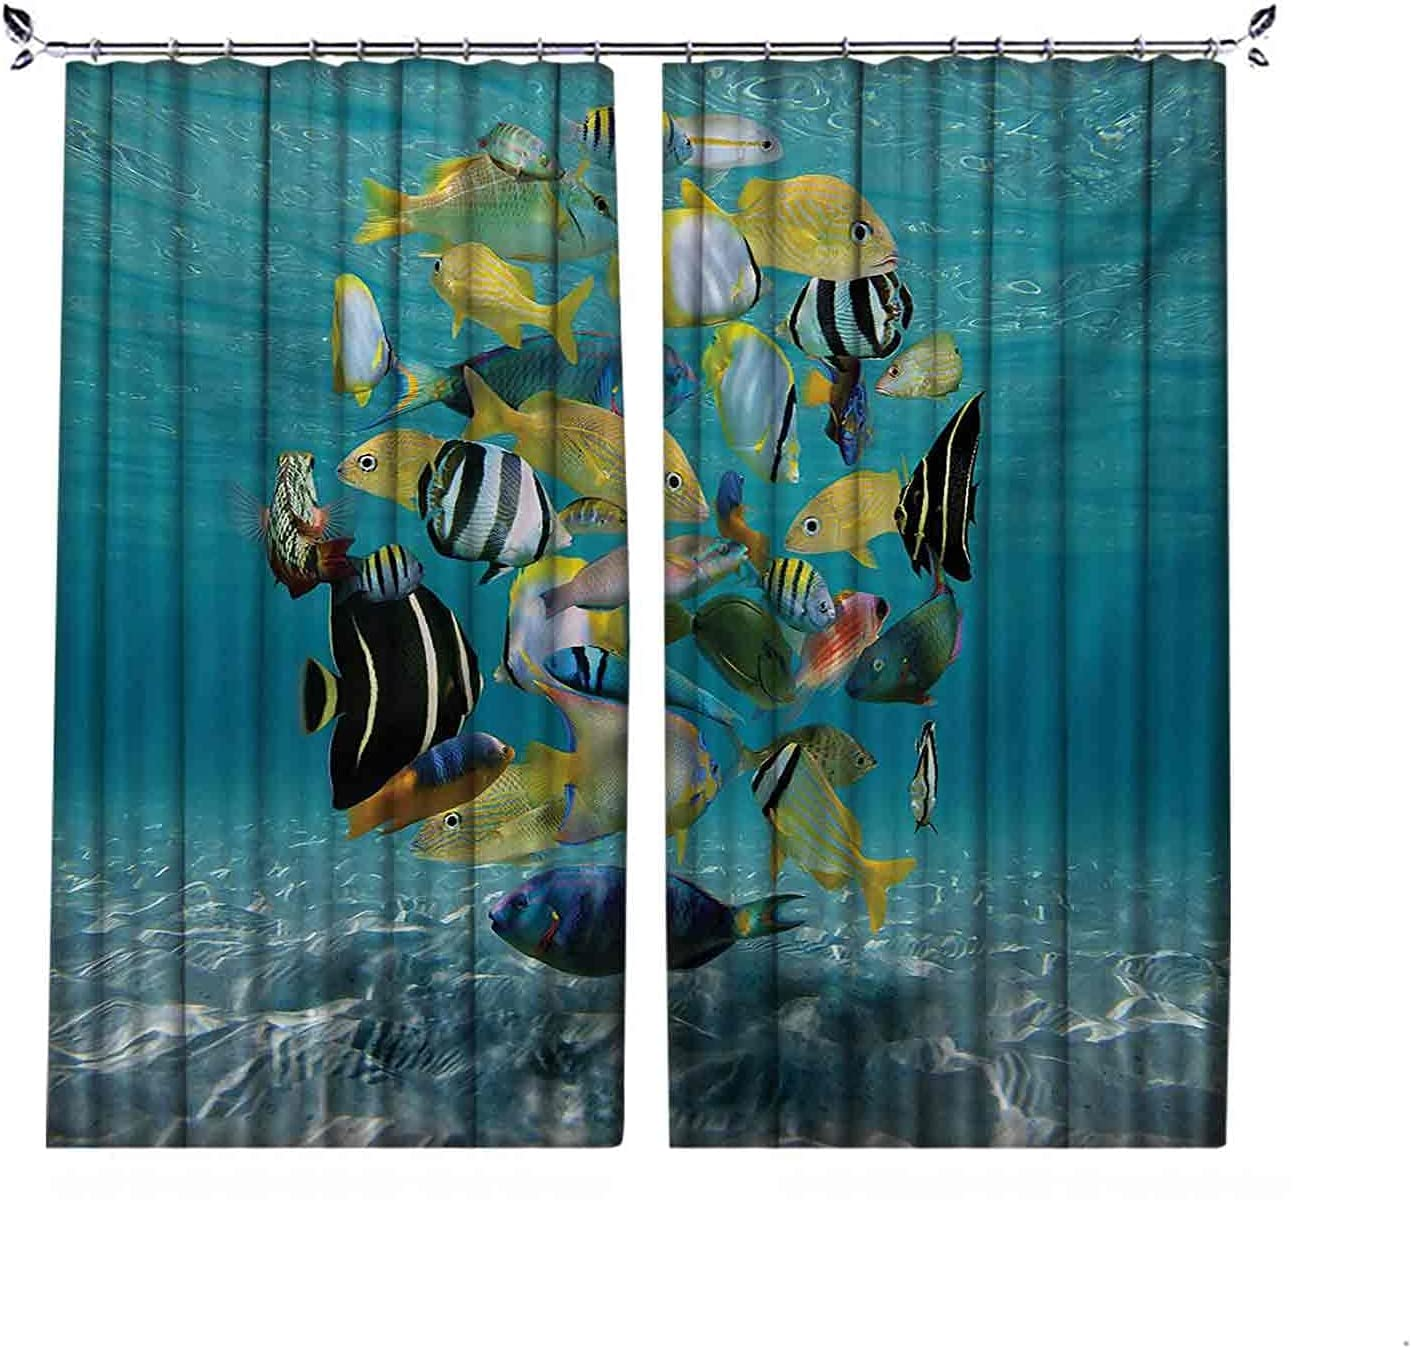 90% Blackout Fish Curtains Shoal Forming of Max 57% OFF Circle Above Clearance SALE Limited time a